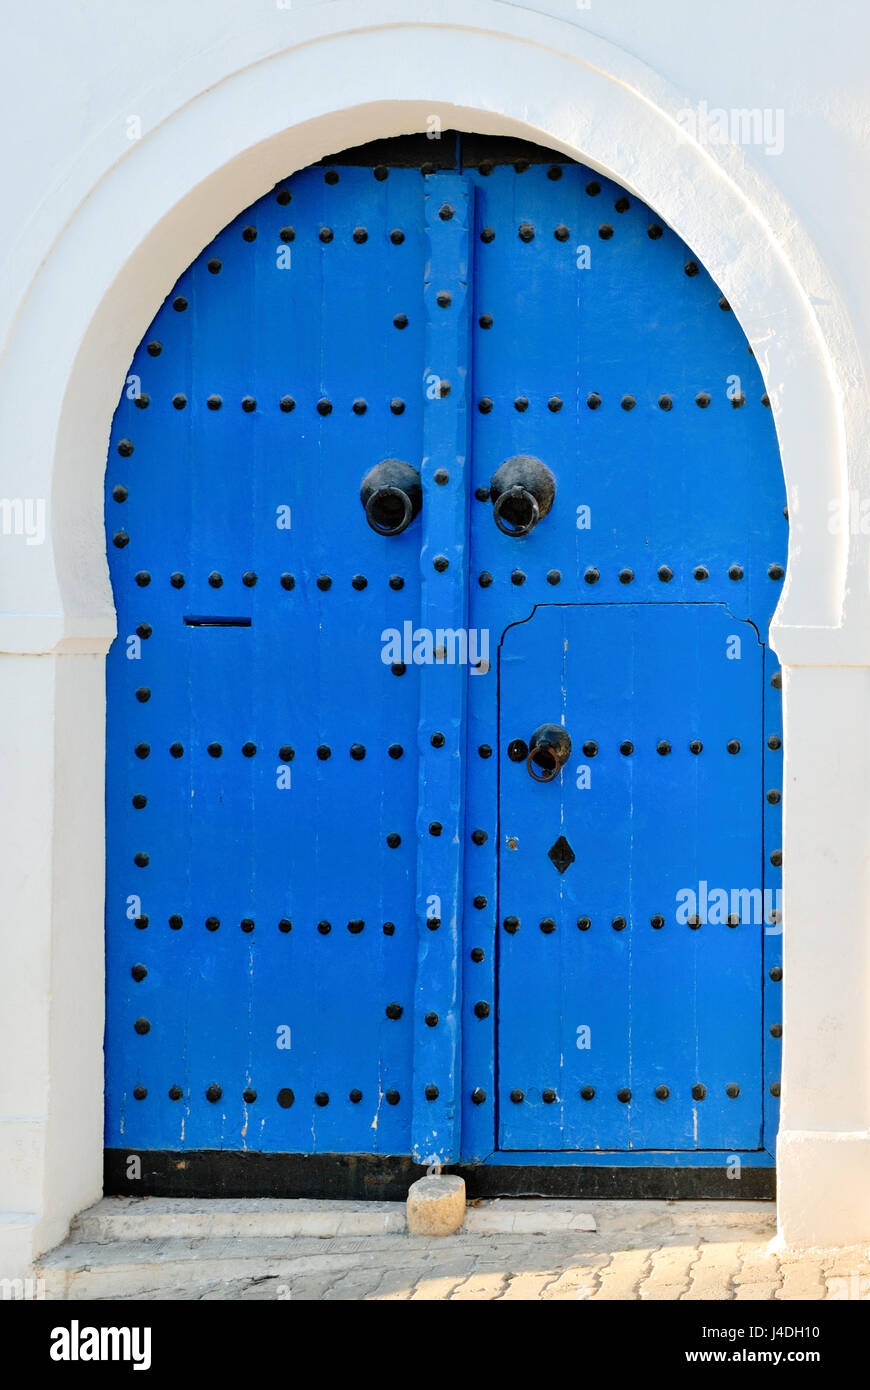 Arched Doorway with Blue Studded Door, Africa, North Africa, Tunisia, Sidi Bou Said Stock Photo